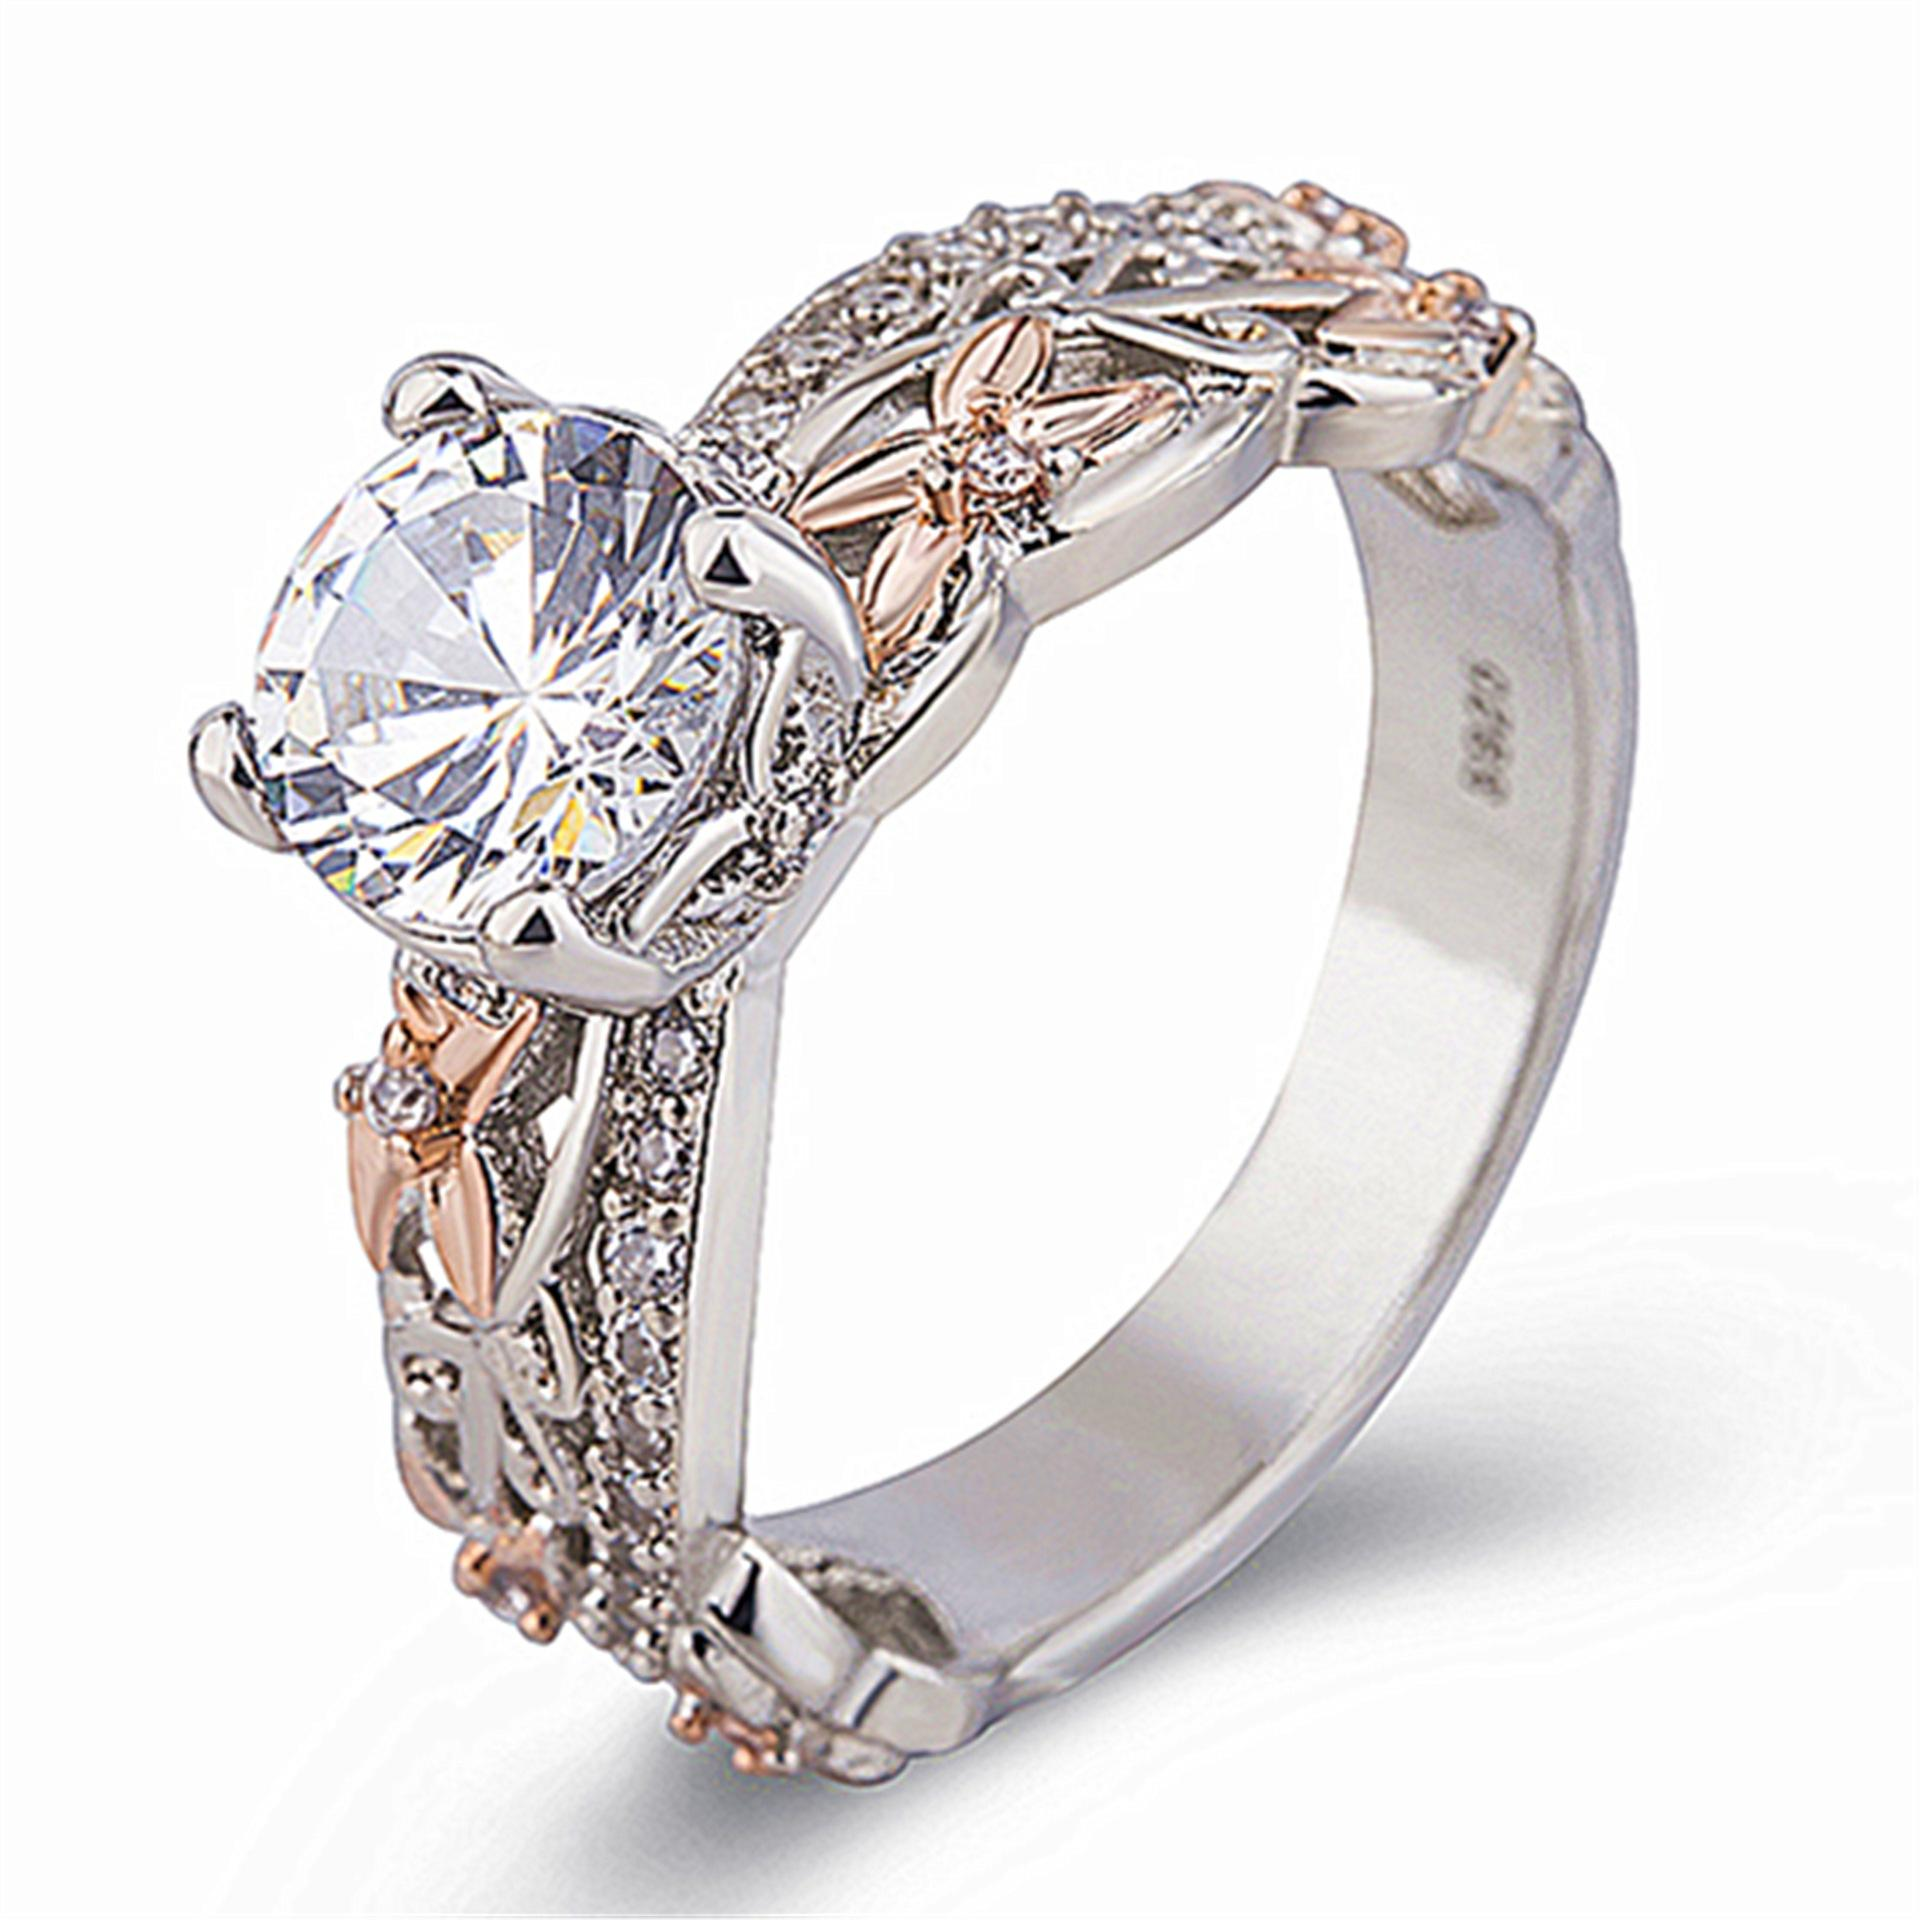 Fashion Silver And Rose Gold Diamond Finger Rings Wedding Crystals Ring for Women Jewelry Female Accessories